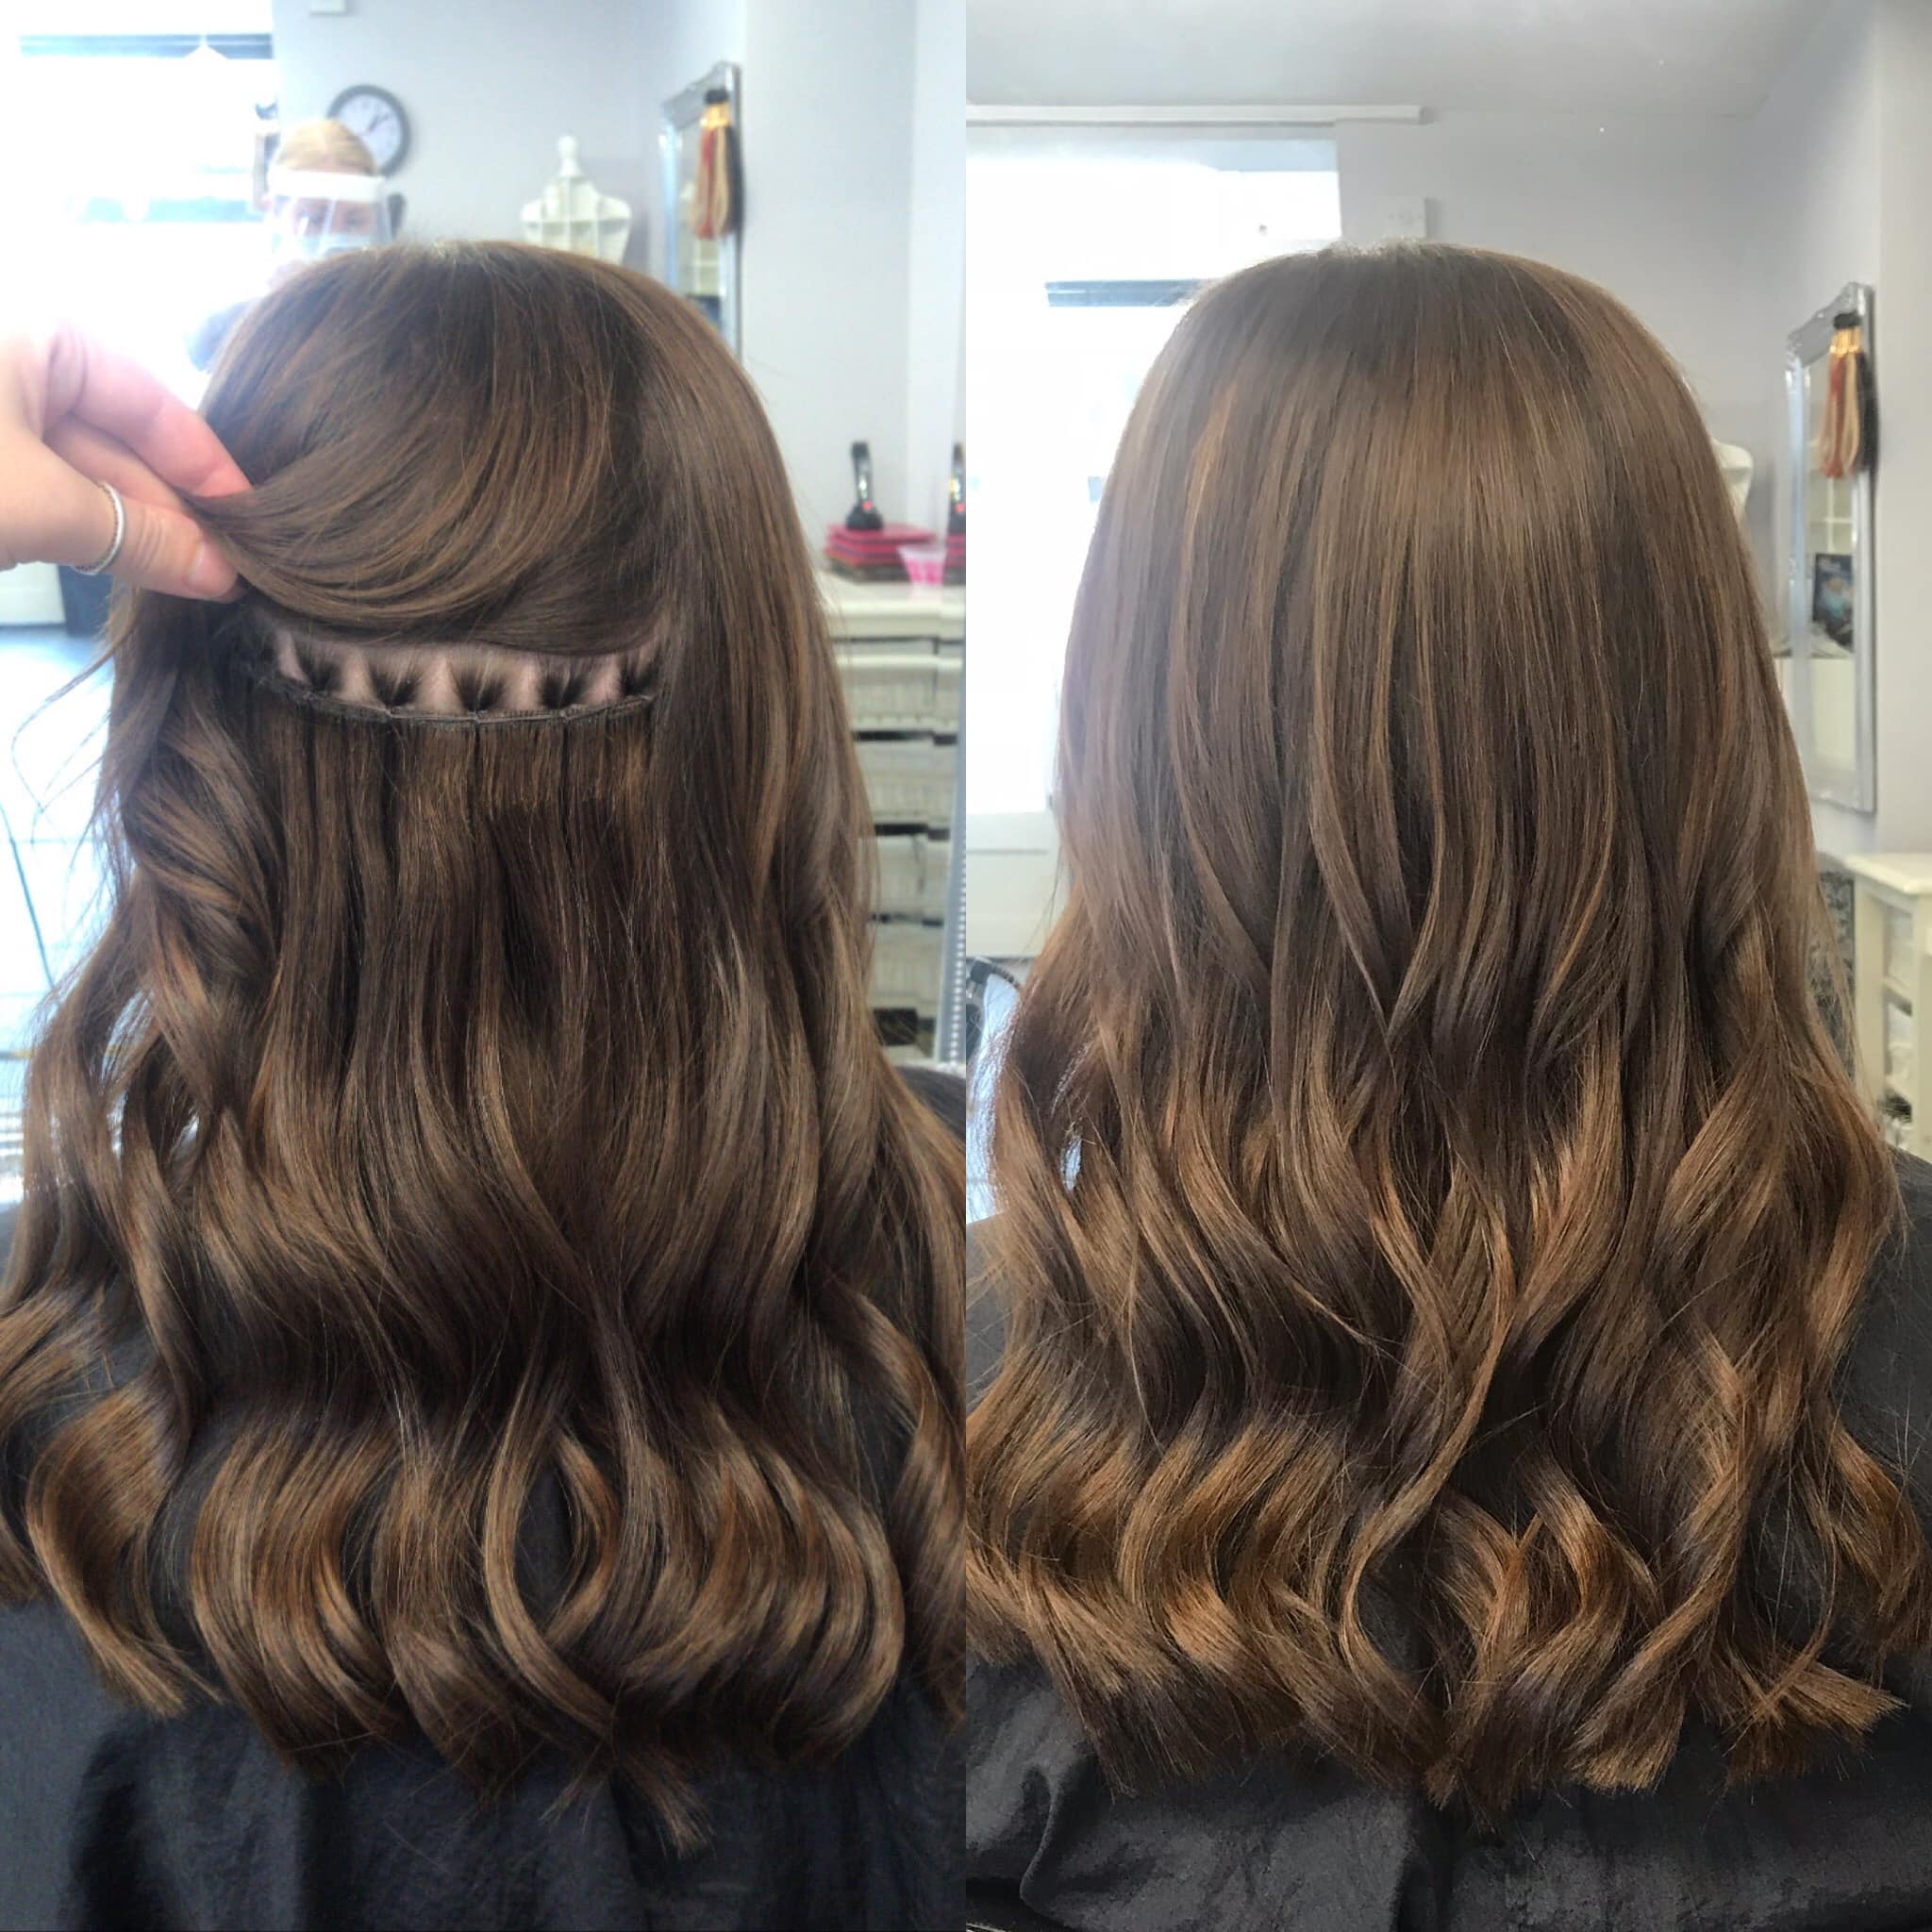 Angelslocks weft extensions